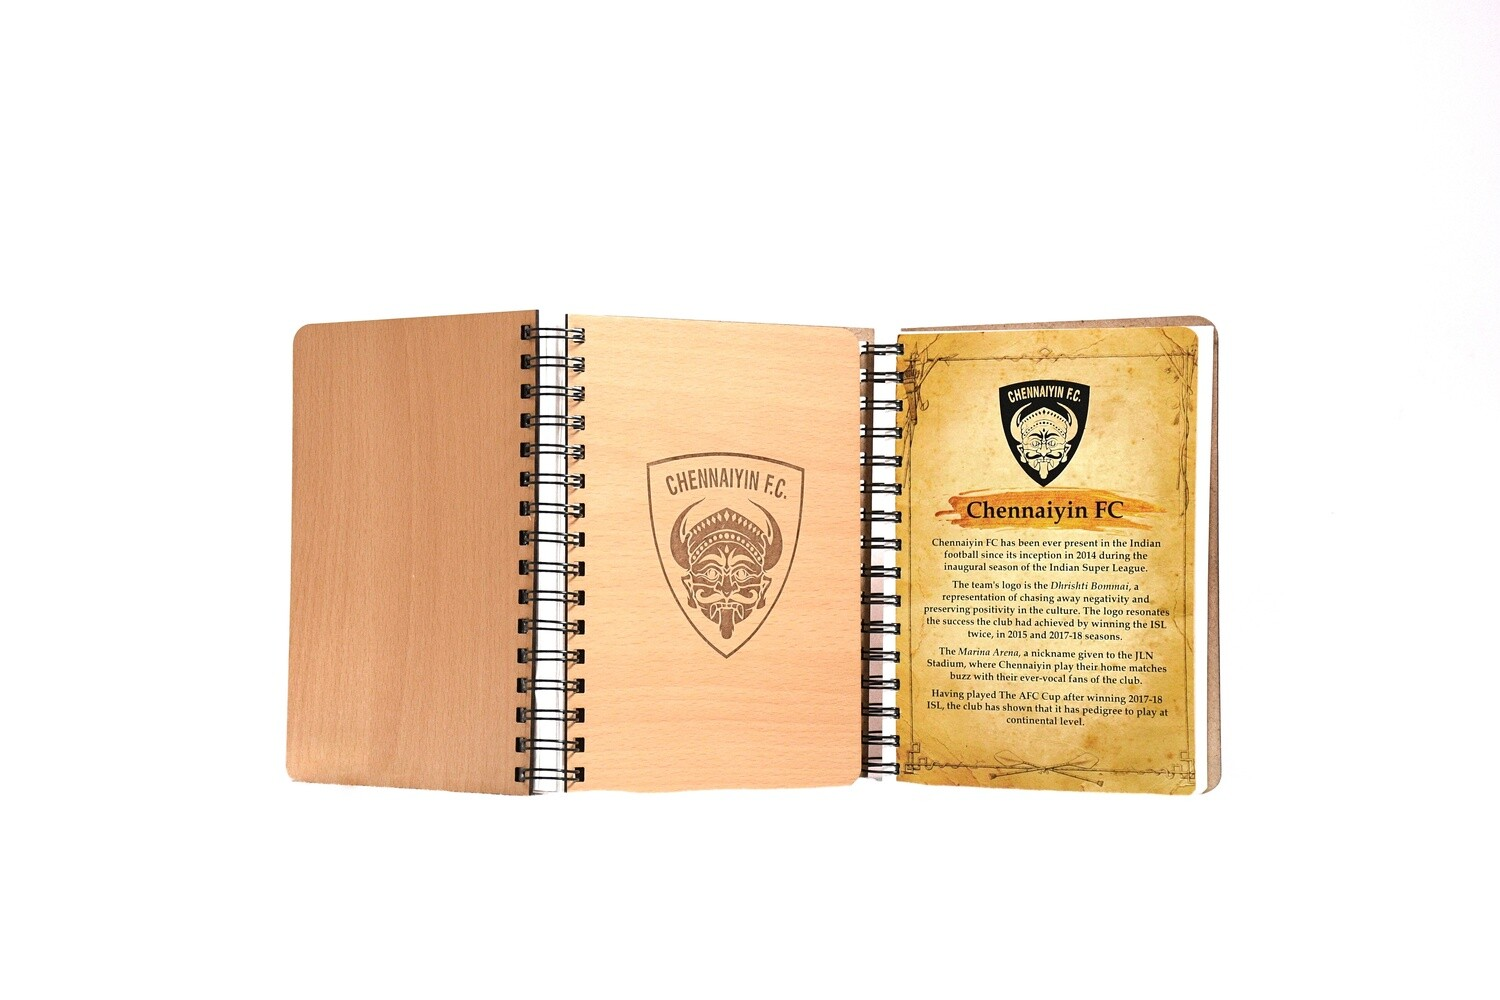 Chennaiyin FC Diary Notebook with Engraved Wooden Cover